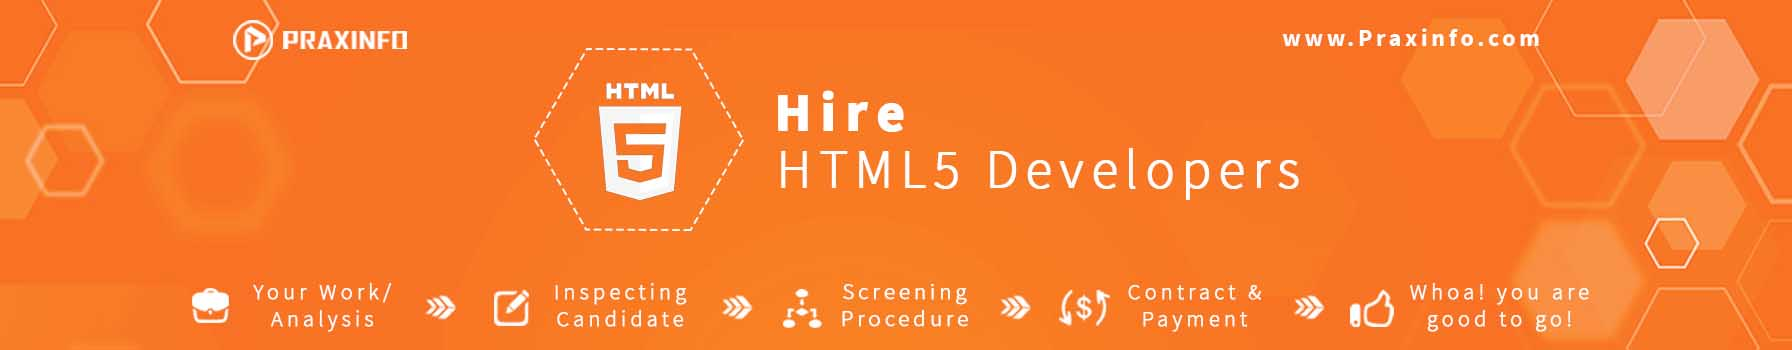 hire-html5-developer.jpg